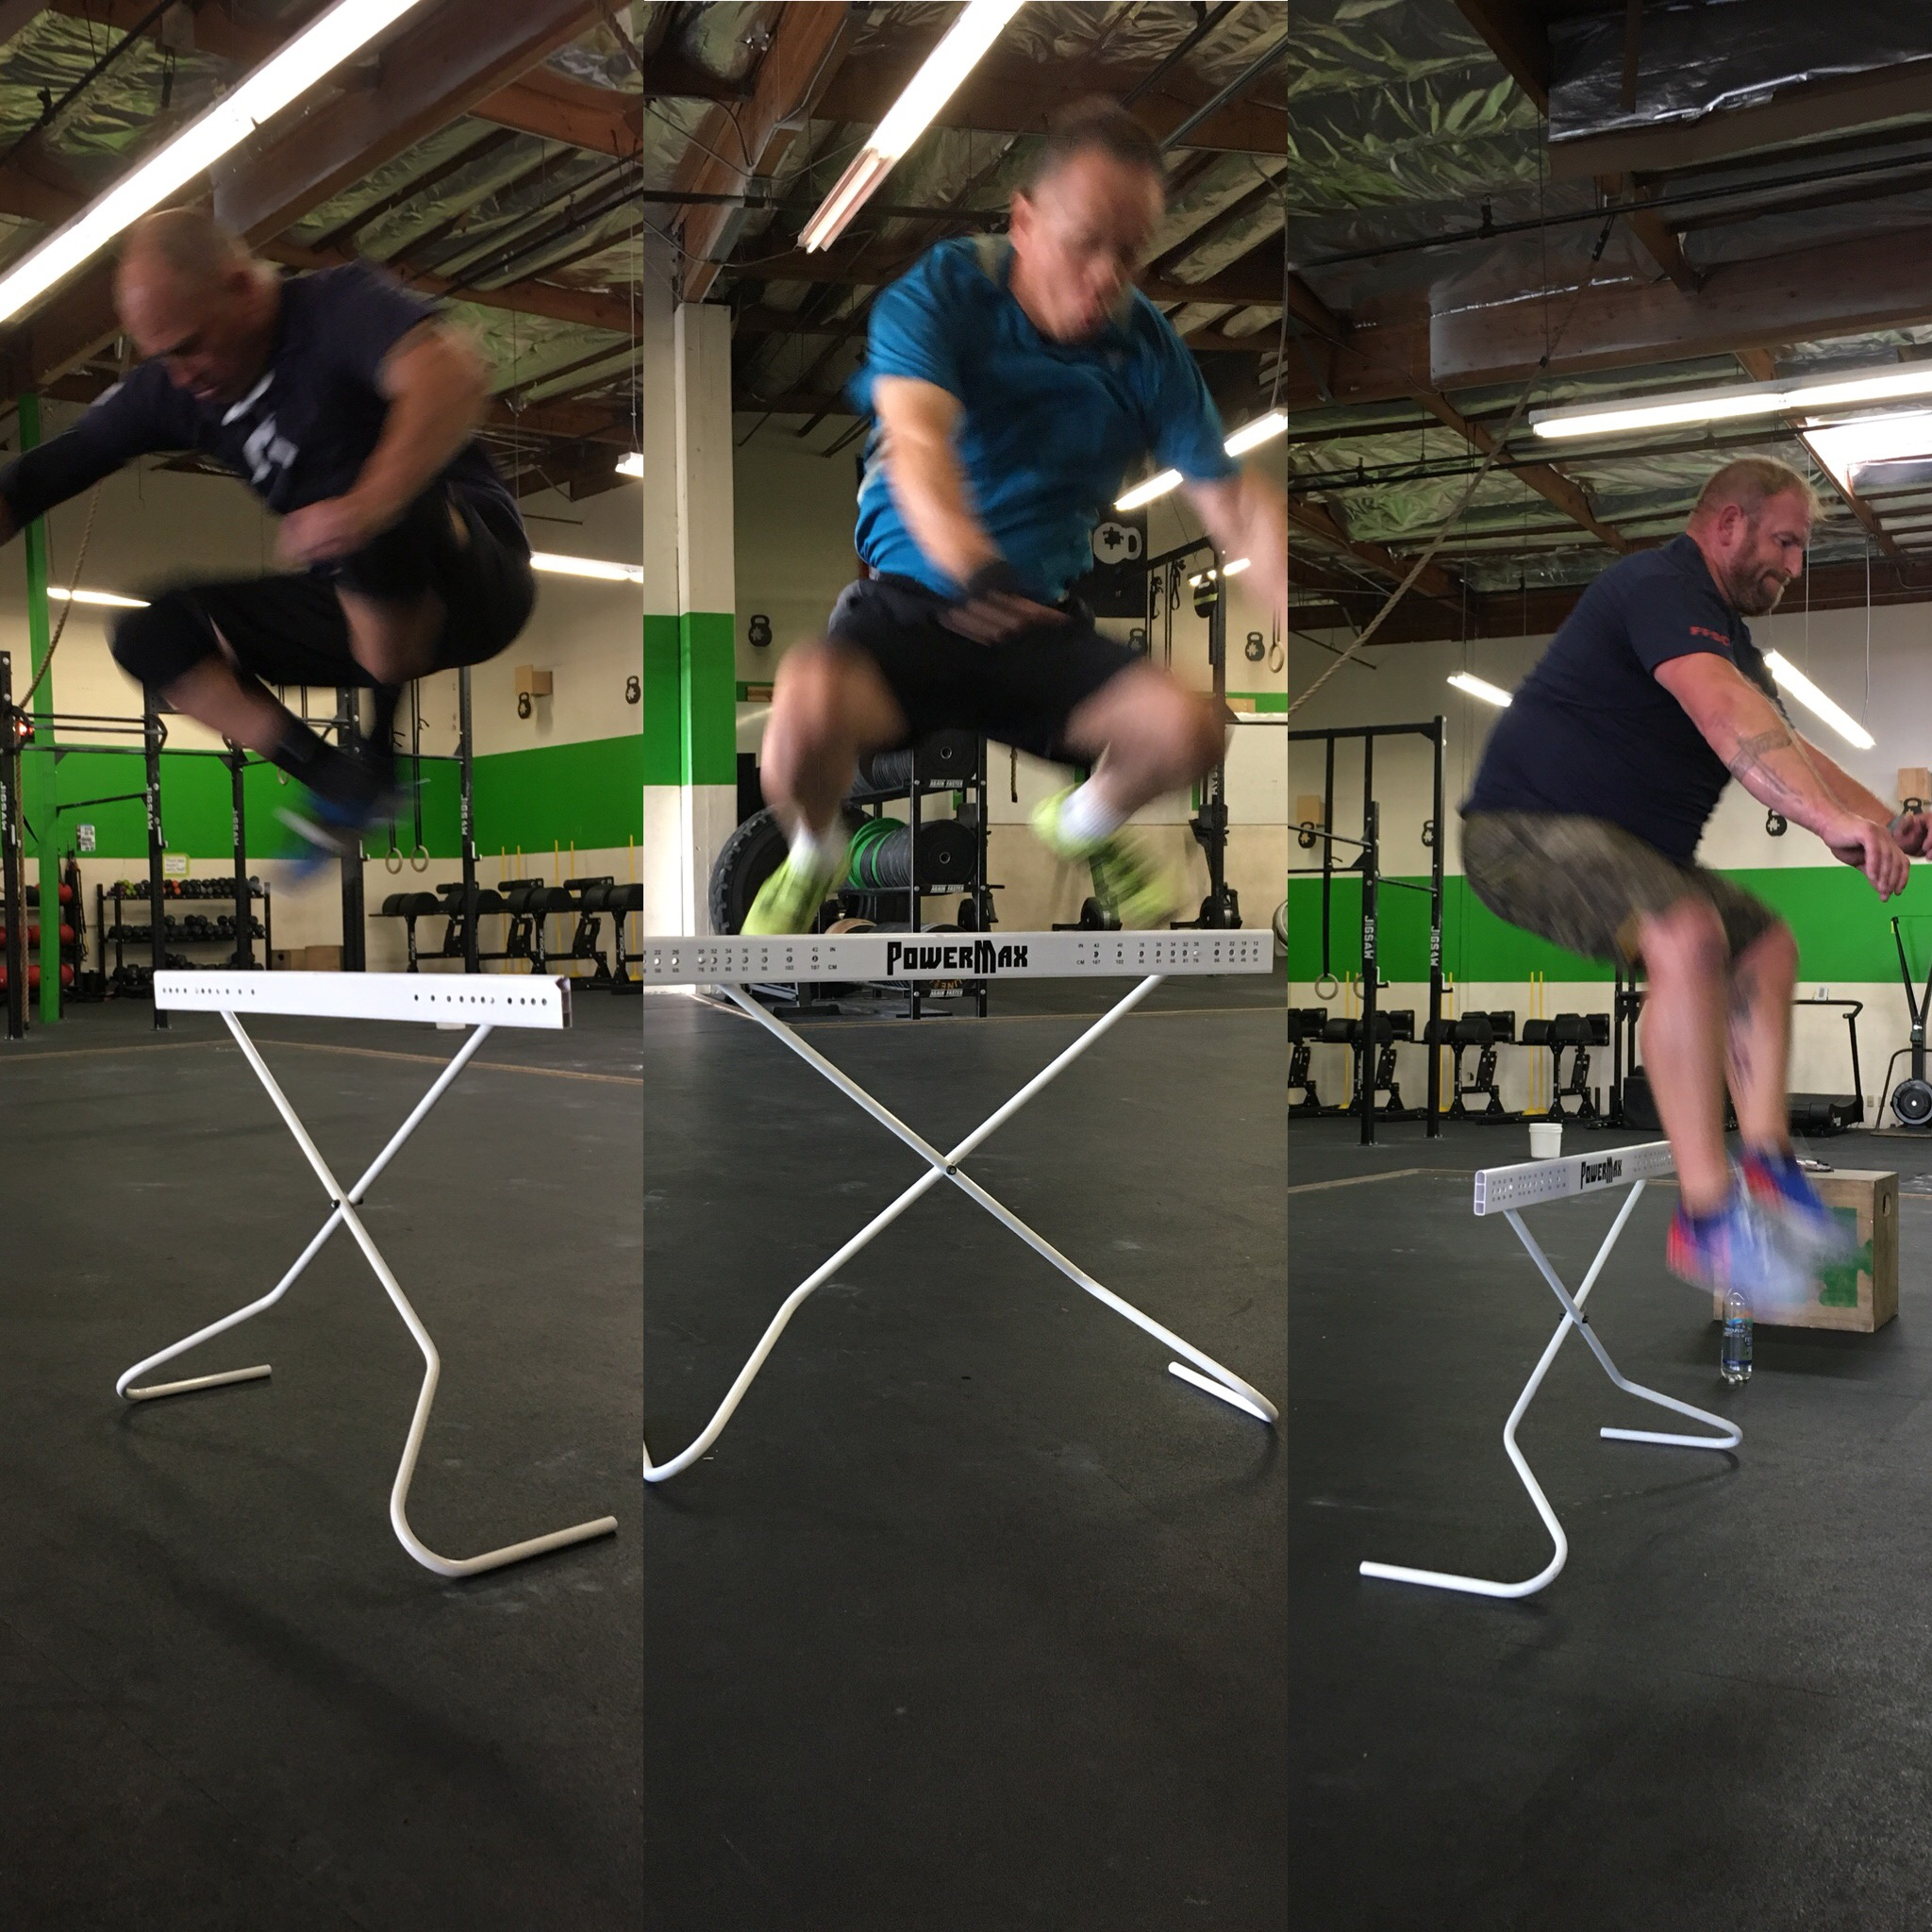 How high did you get on the Hurdle Jumps?